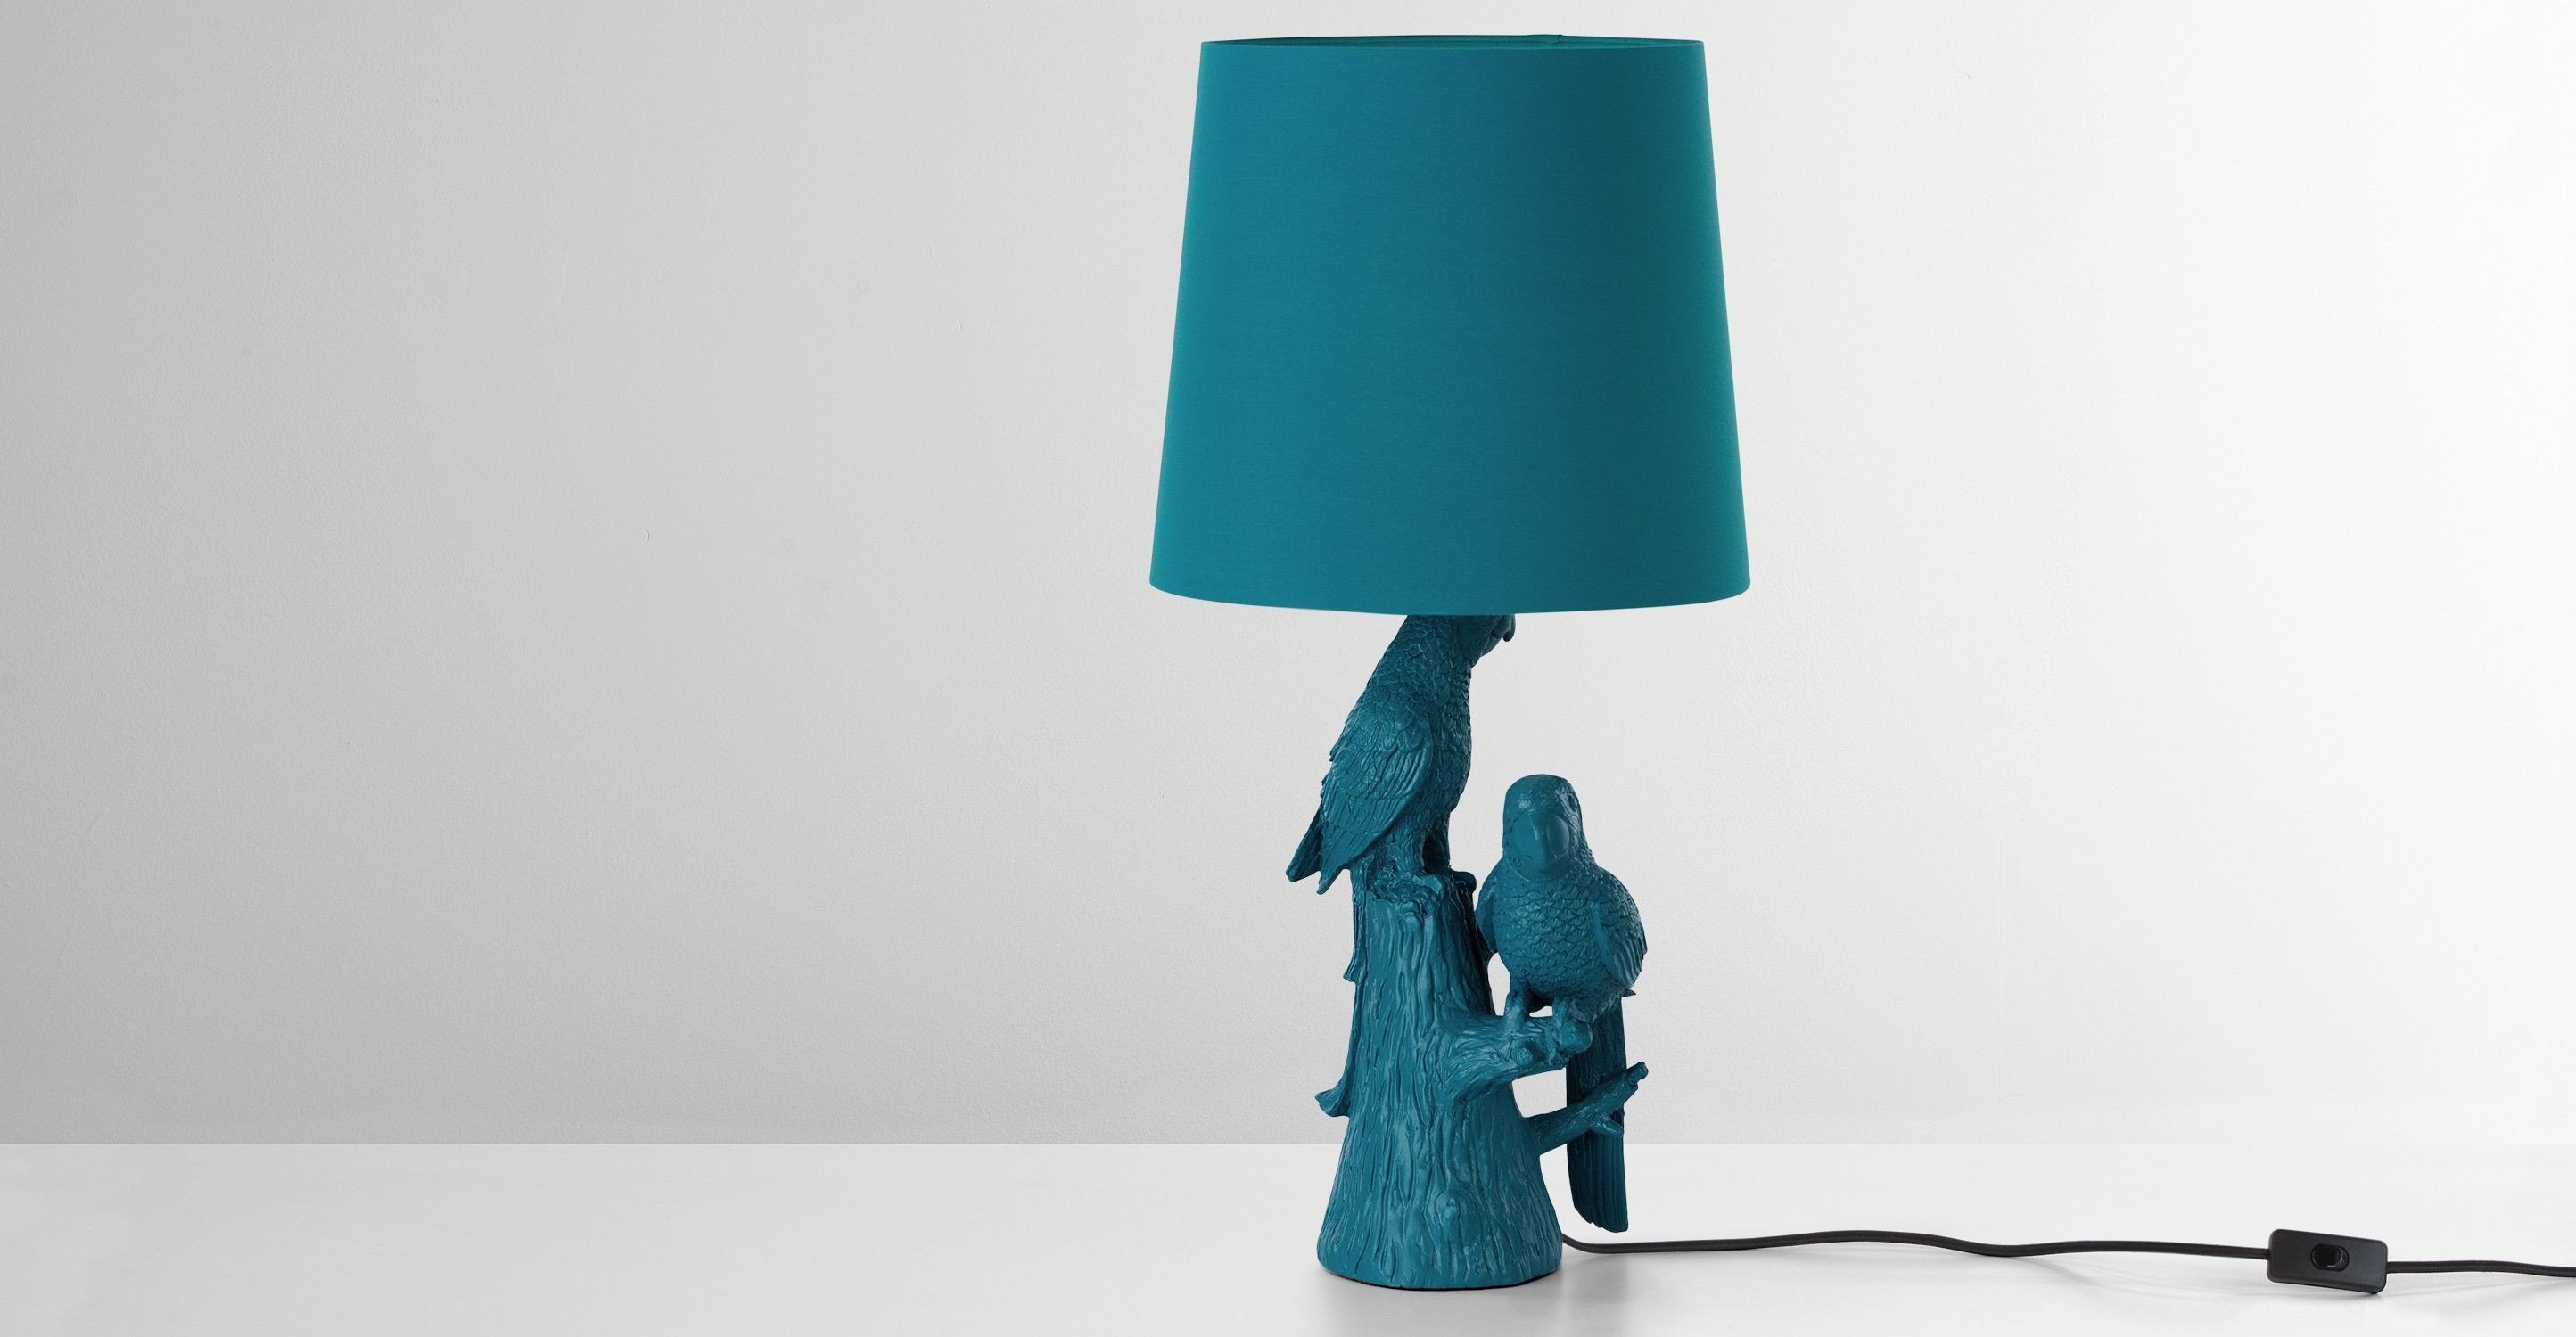 Blue Table Lamps Bedroom Best Of Parrot Lampe De Table Bleu Canard 3 A 3